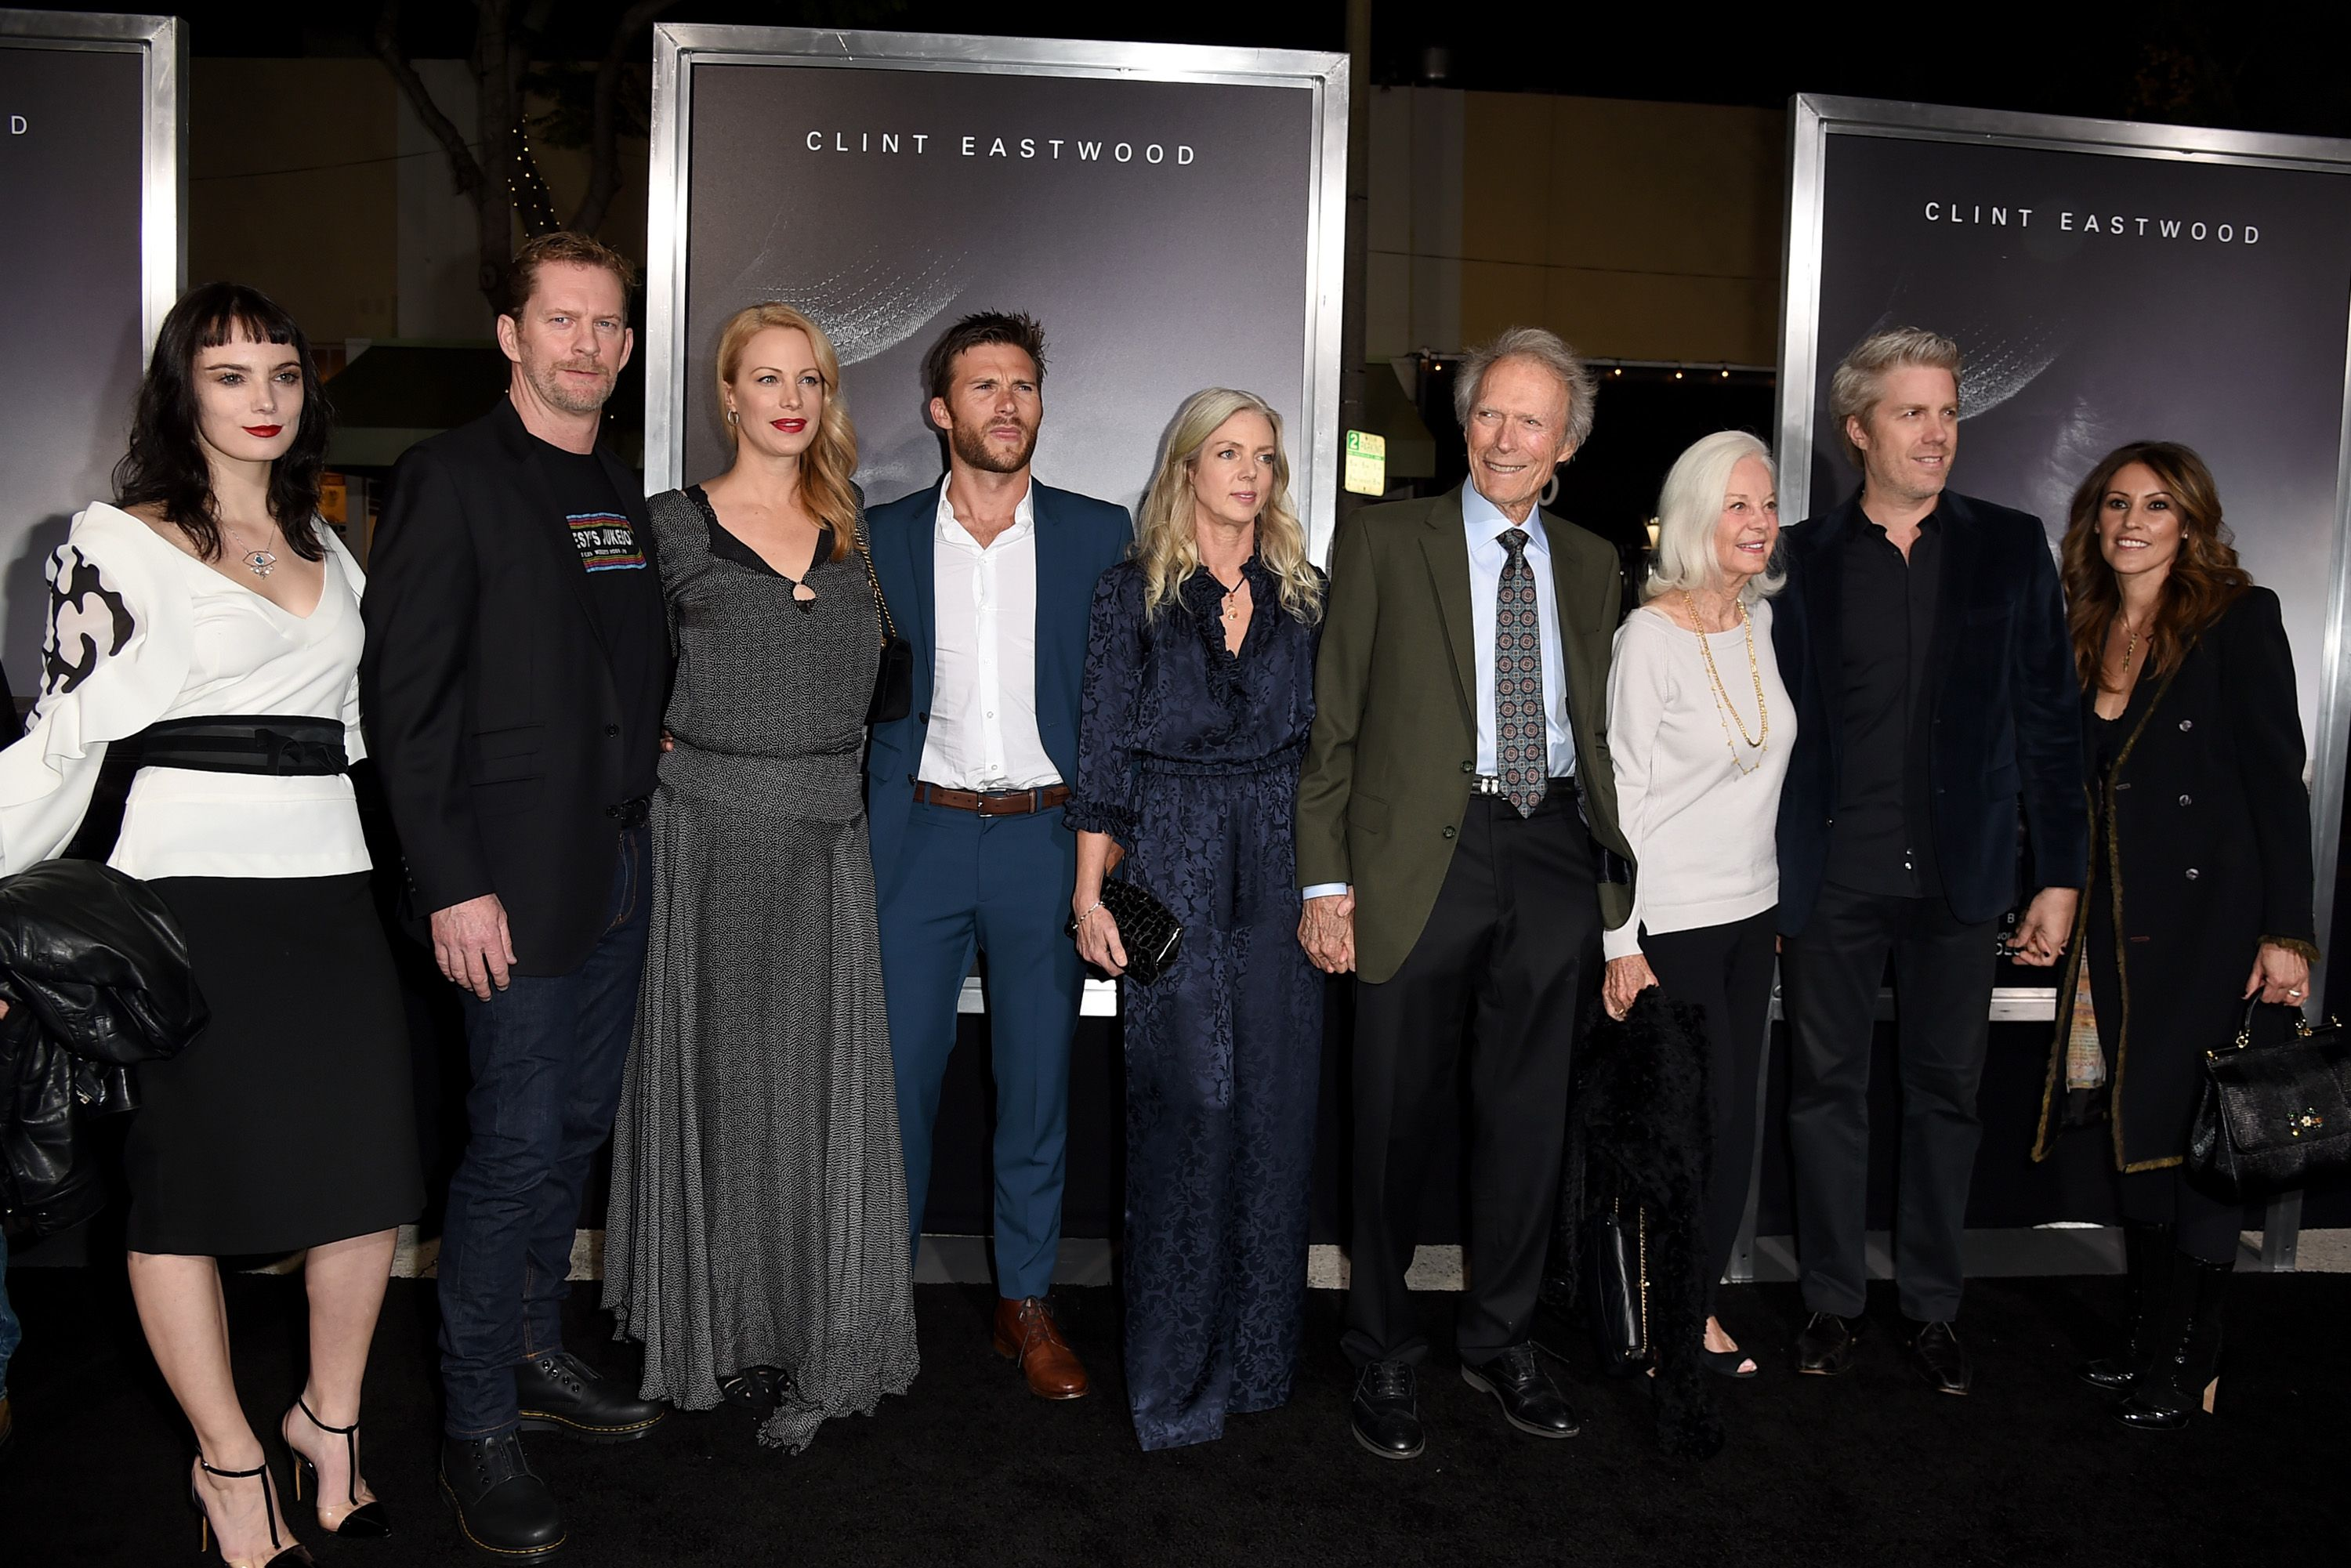 """Clint Eastwood and family at the premiere of Warner Bros. Pictures' """"The Mule"""" at the Village Theatre on December 10, 2018 